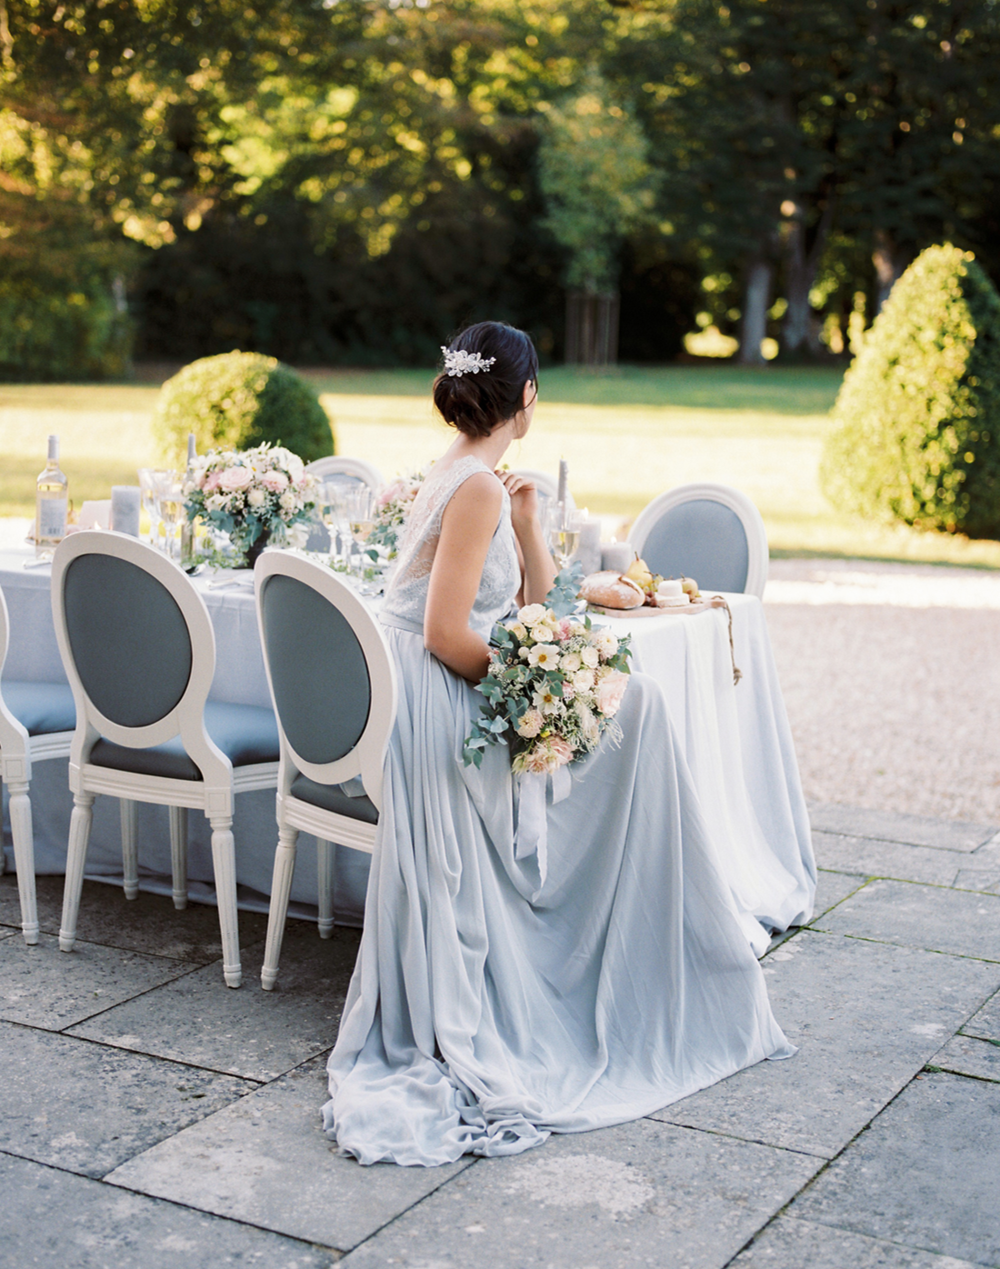 Elegant Wedding at a French Chateau → -